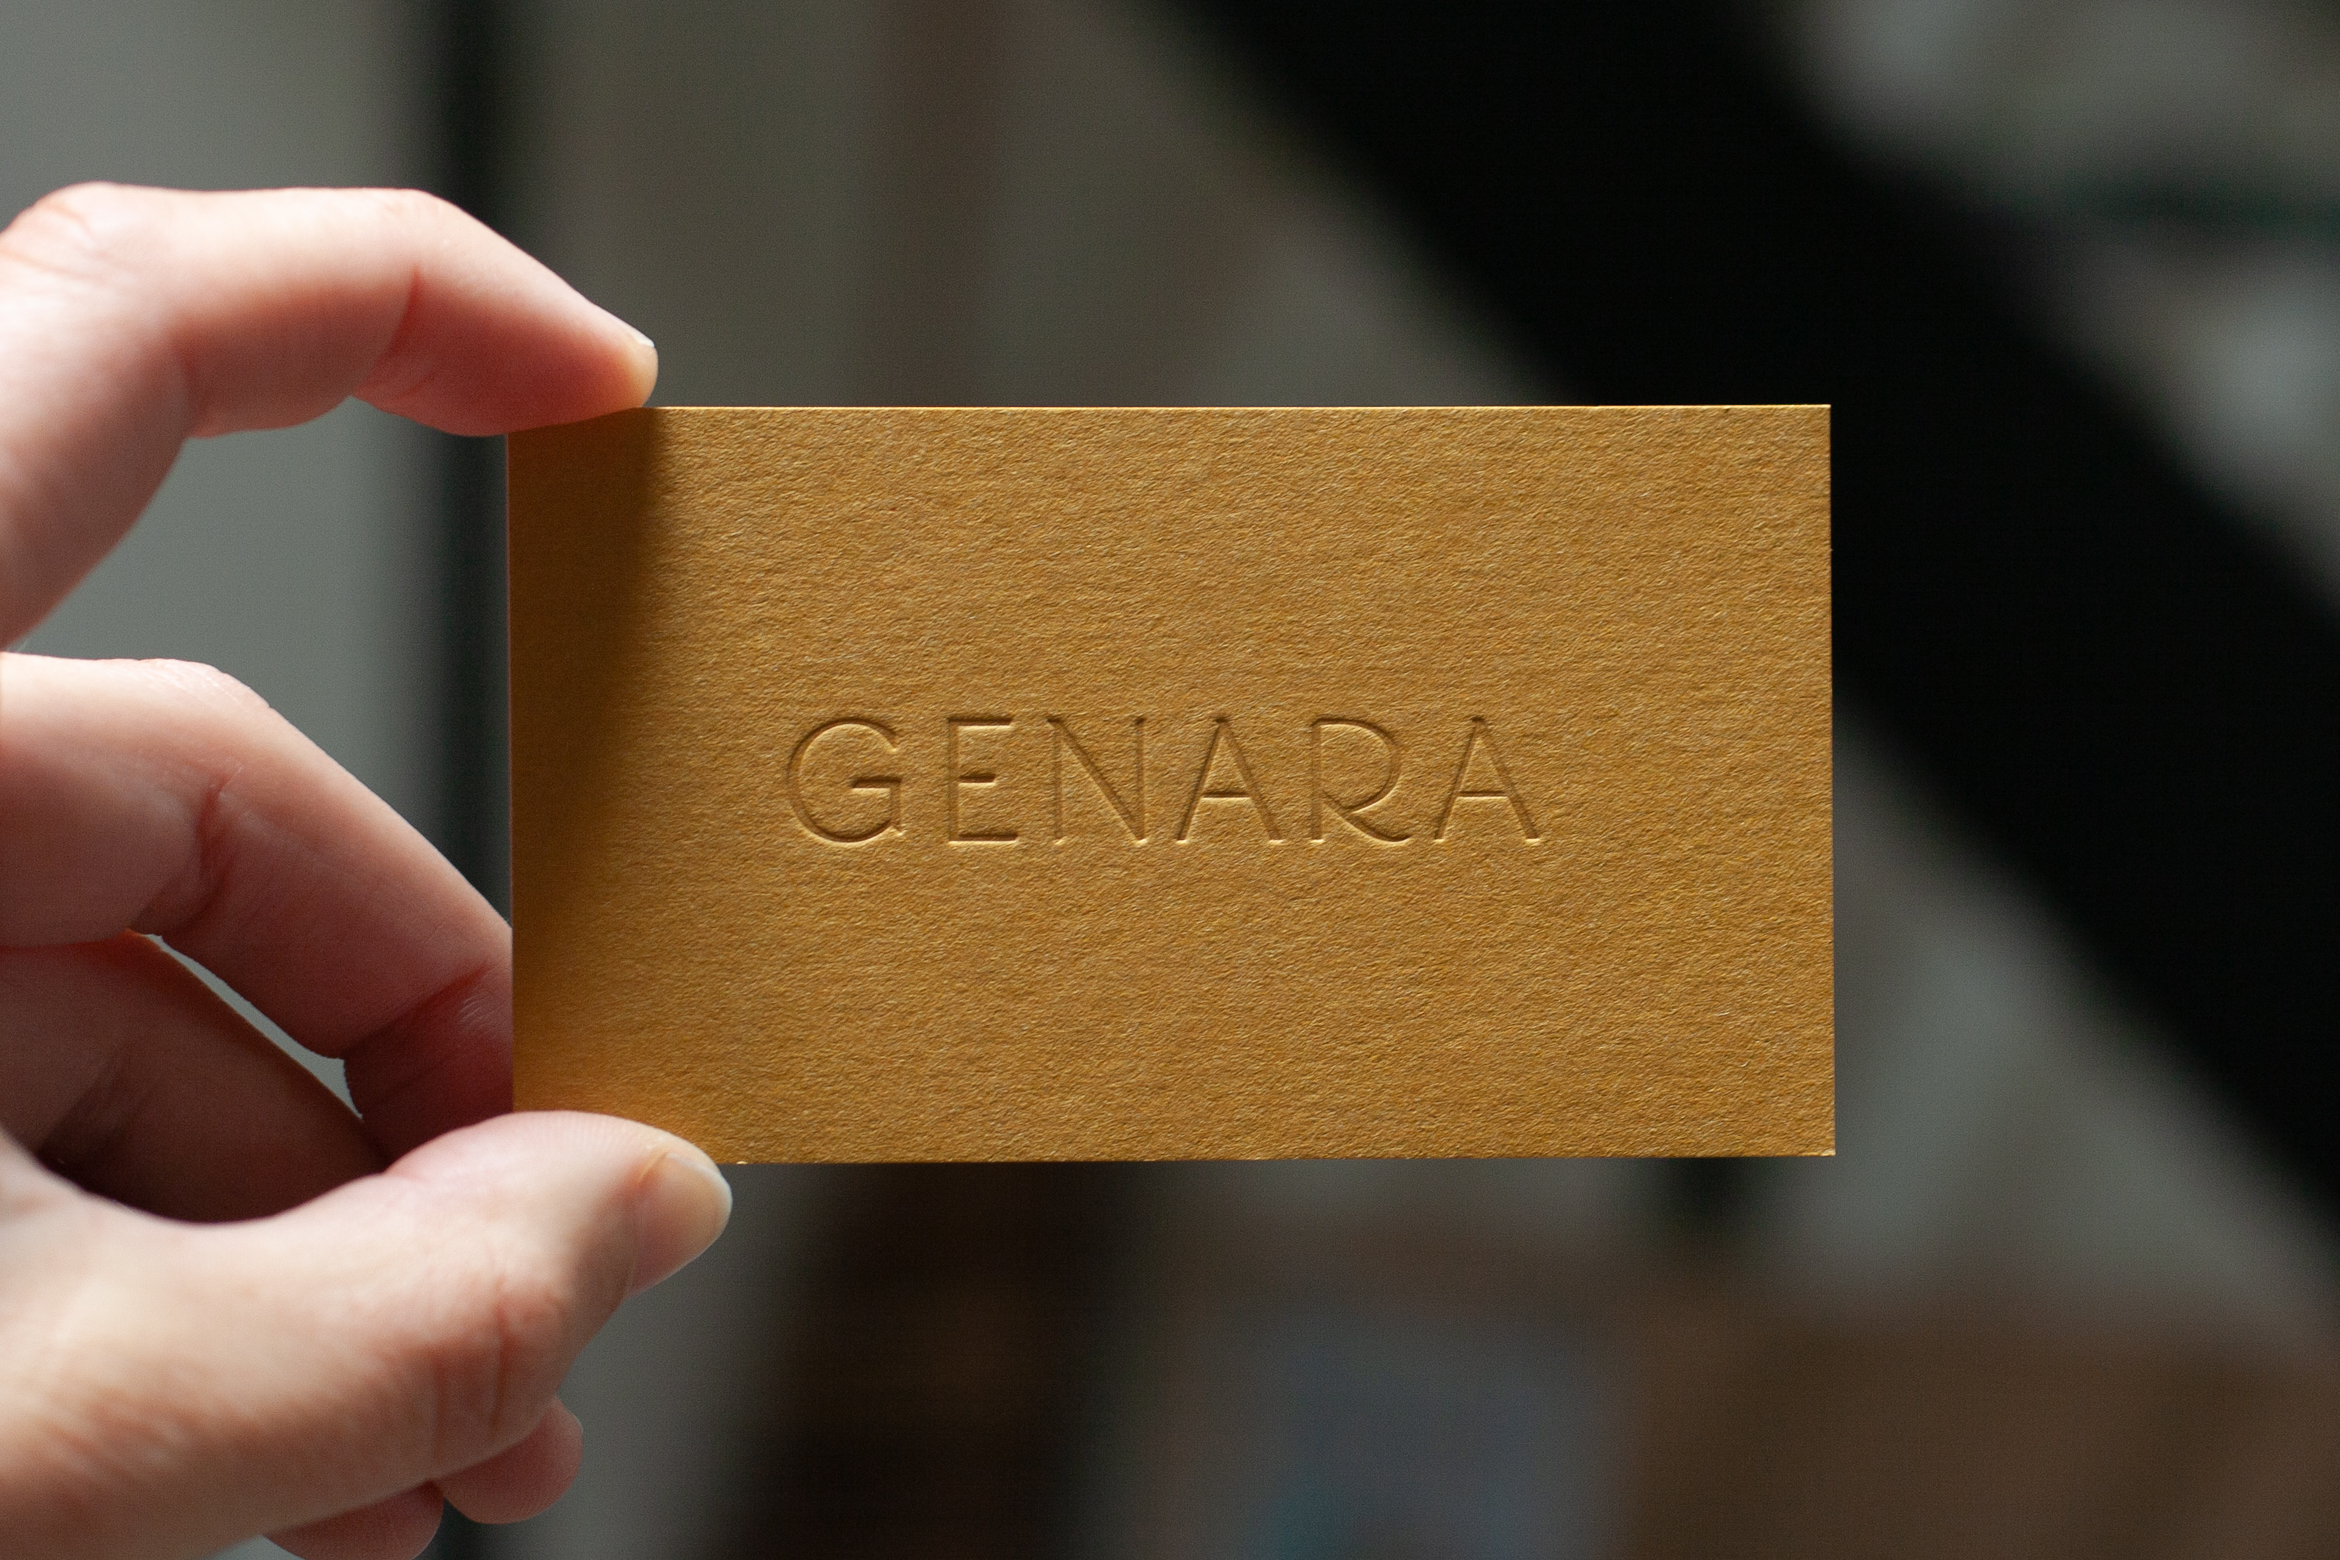 Genara: Coming soon